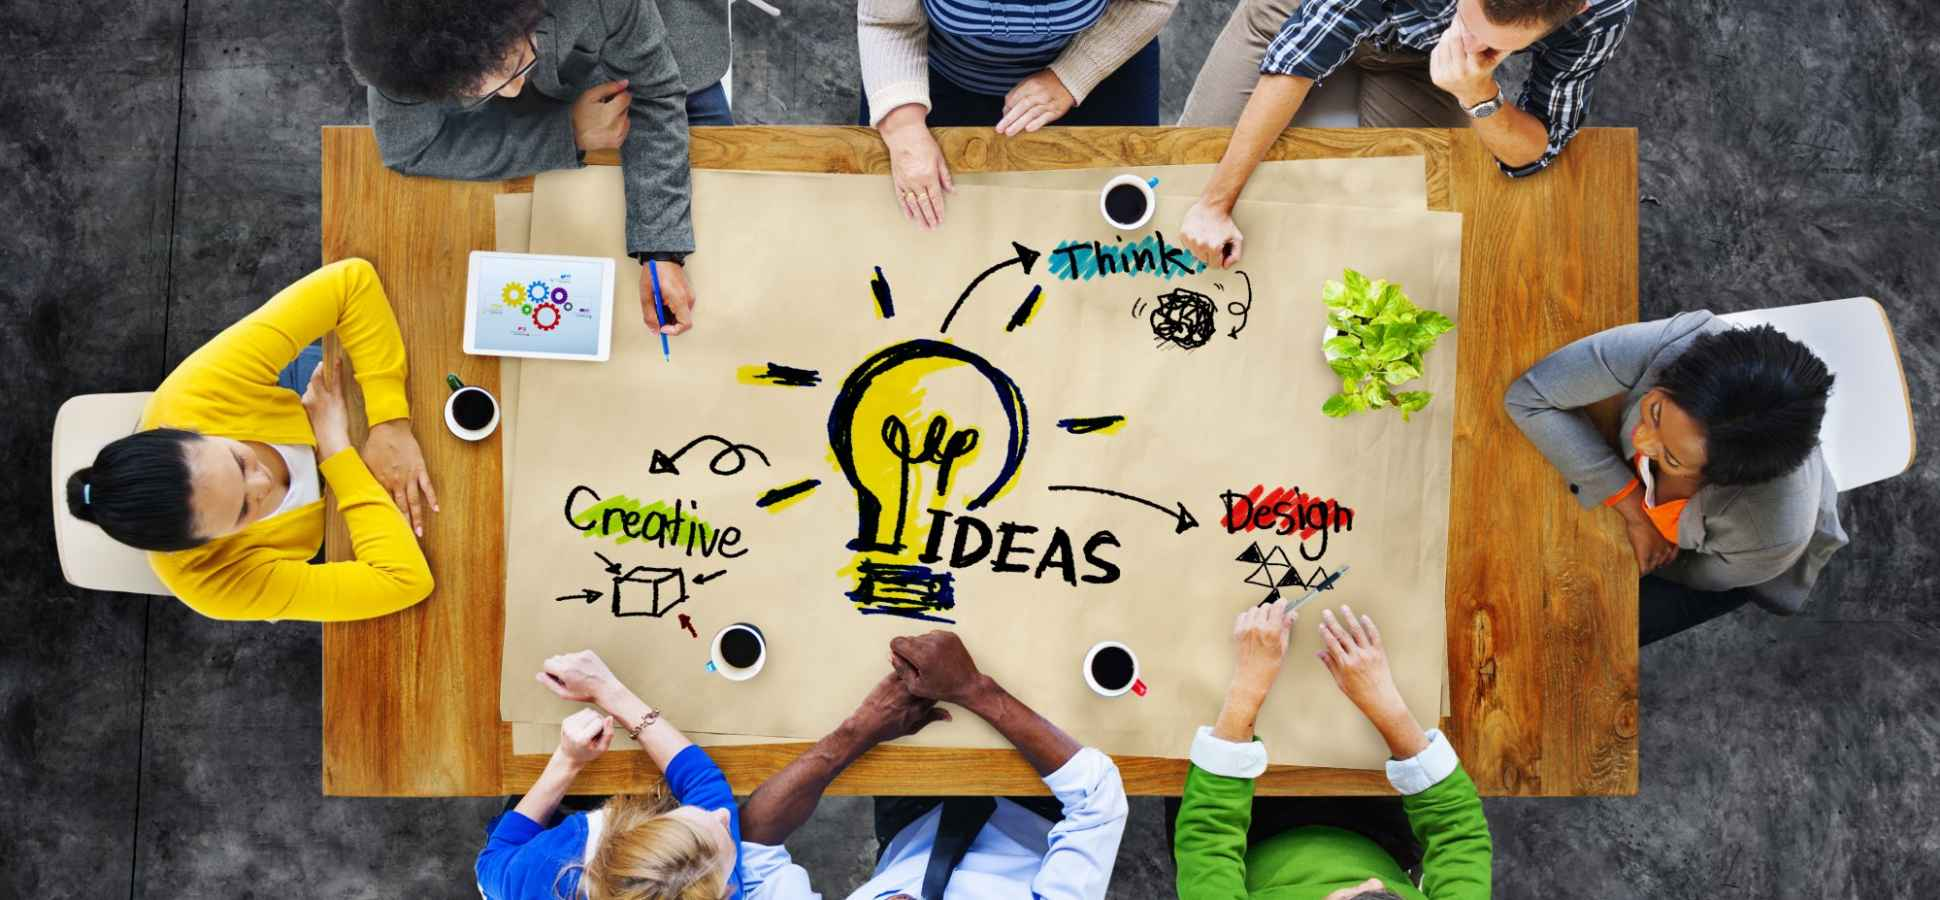 Want to Come Up With Brilliant Ideas? Do This 1 Thing First